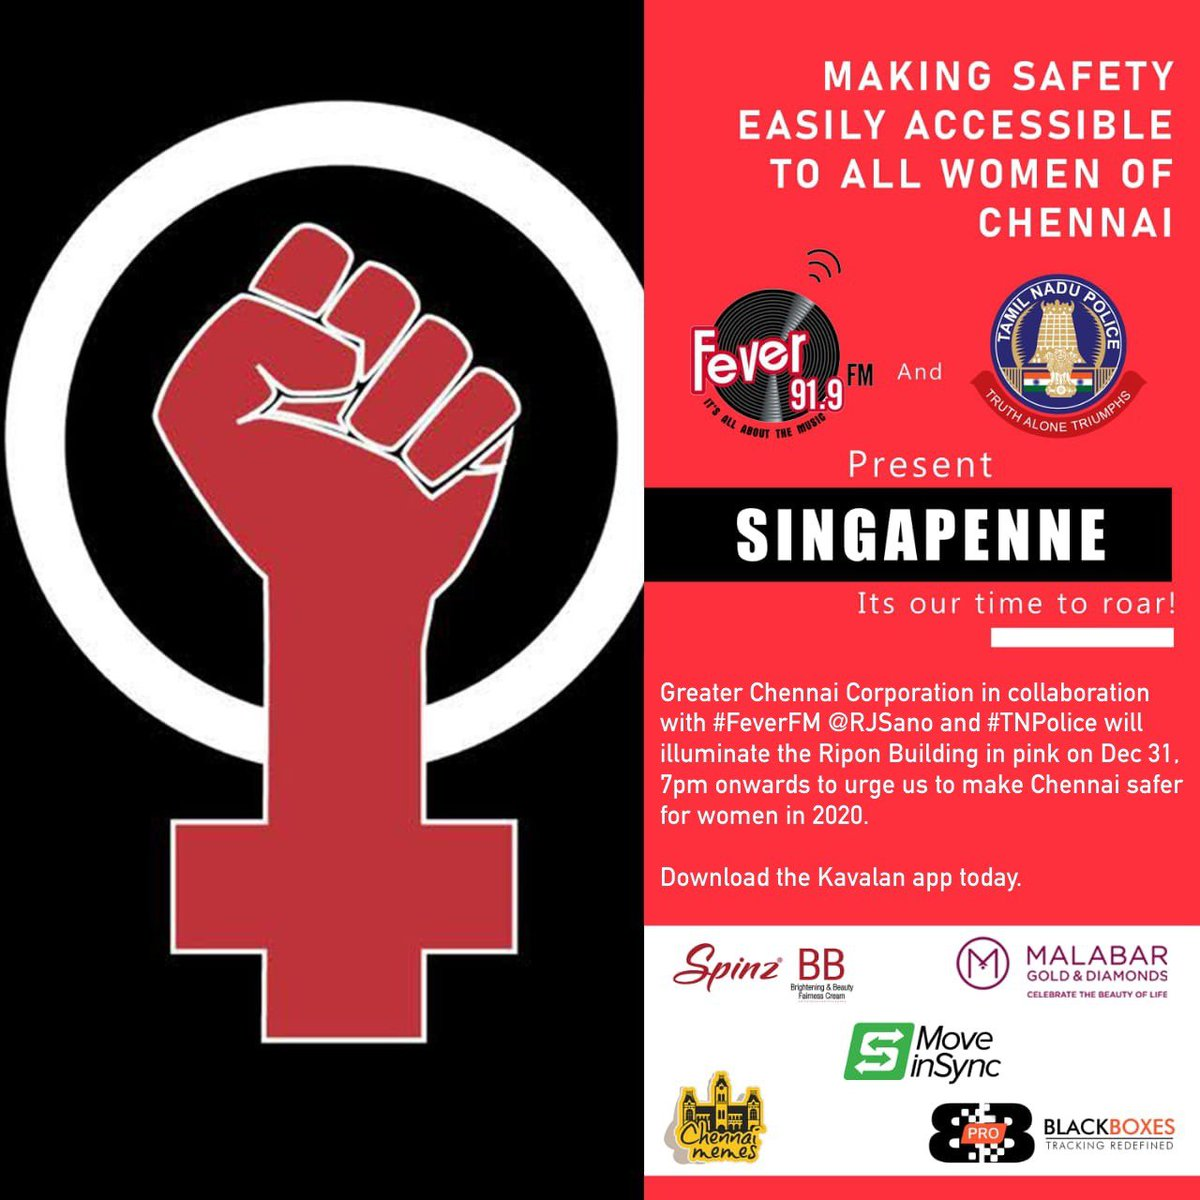 The iconic Ripon building is turning pink tonight for a safer Chennai for women in 2020. Take a selfie and use the hashtag #Singapenne. Share your thoughts on women safety on social media @TheVishnuVishal @Chinmayi @gvprakash @archanakalpathi @khushsundar @Hemarukmani1